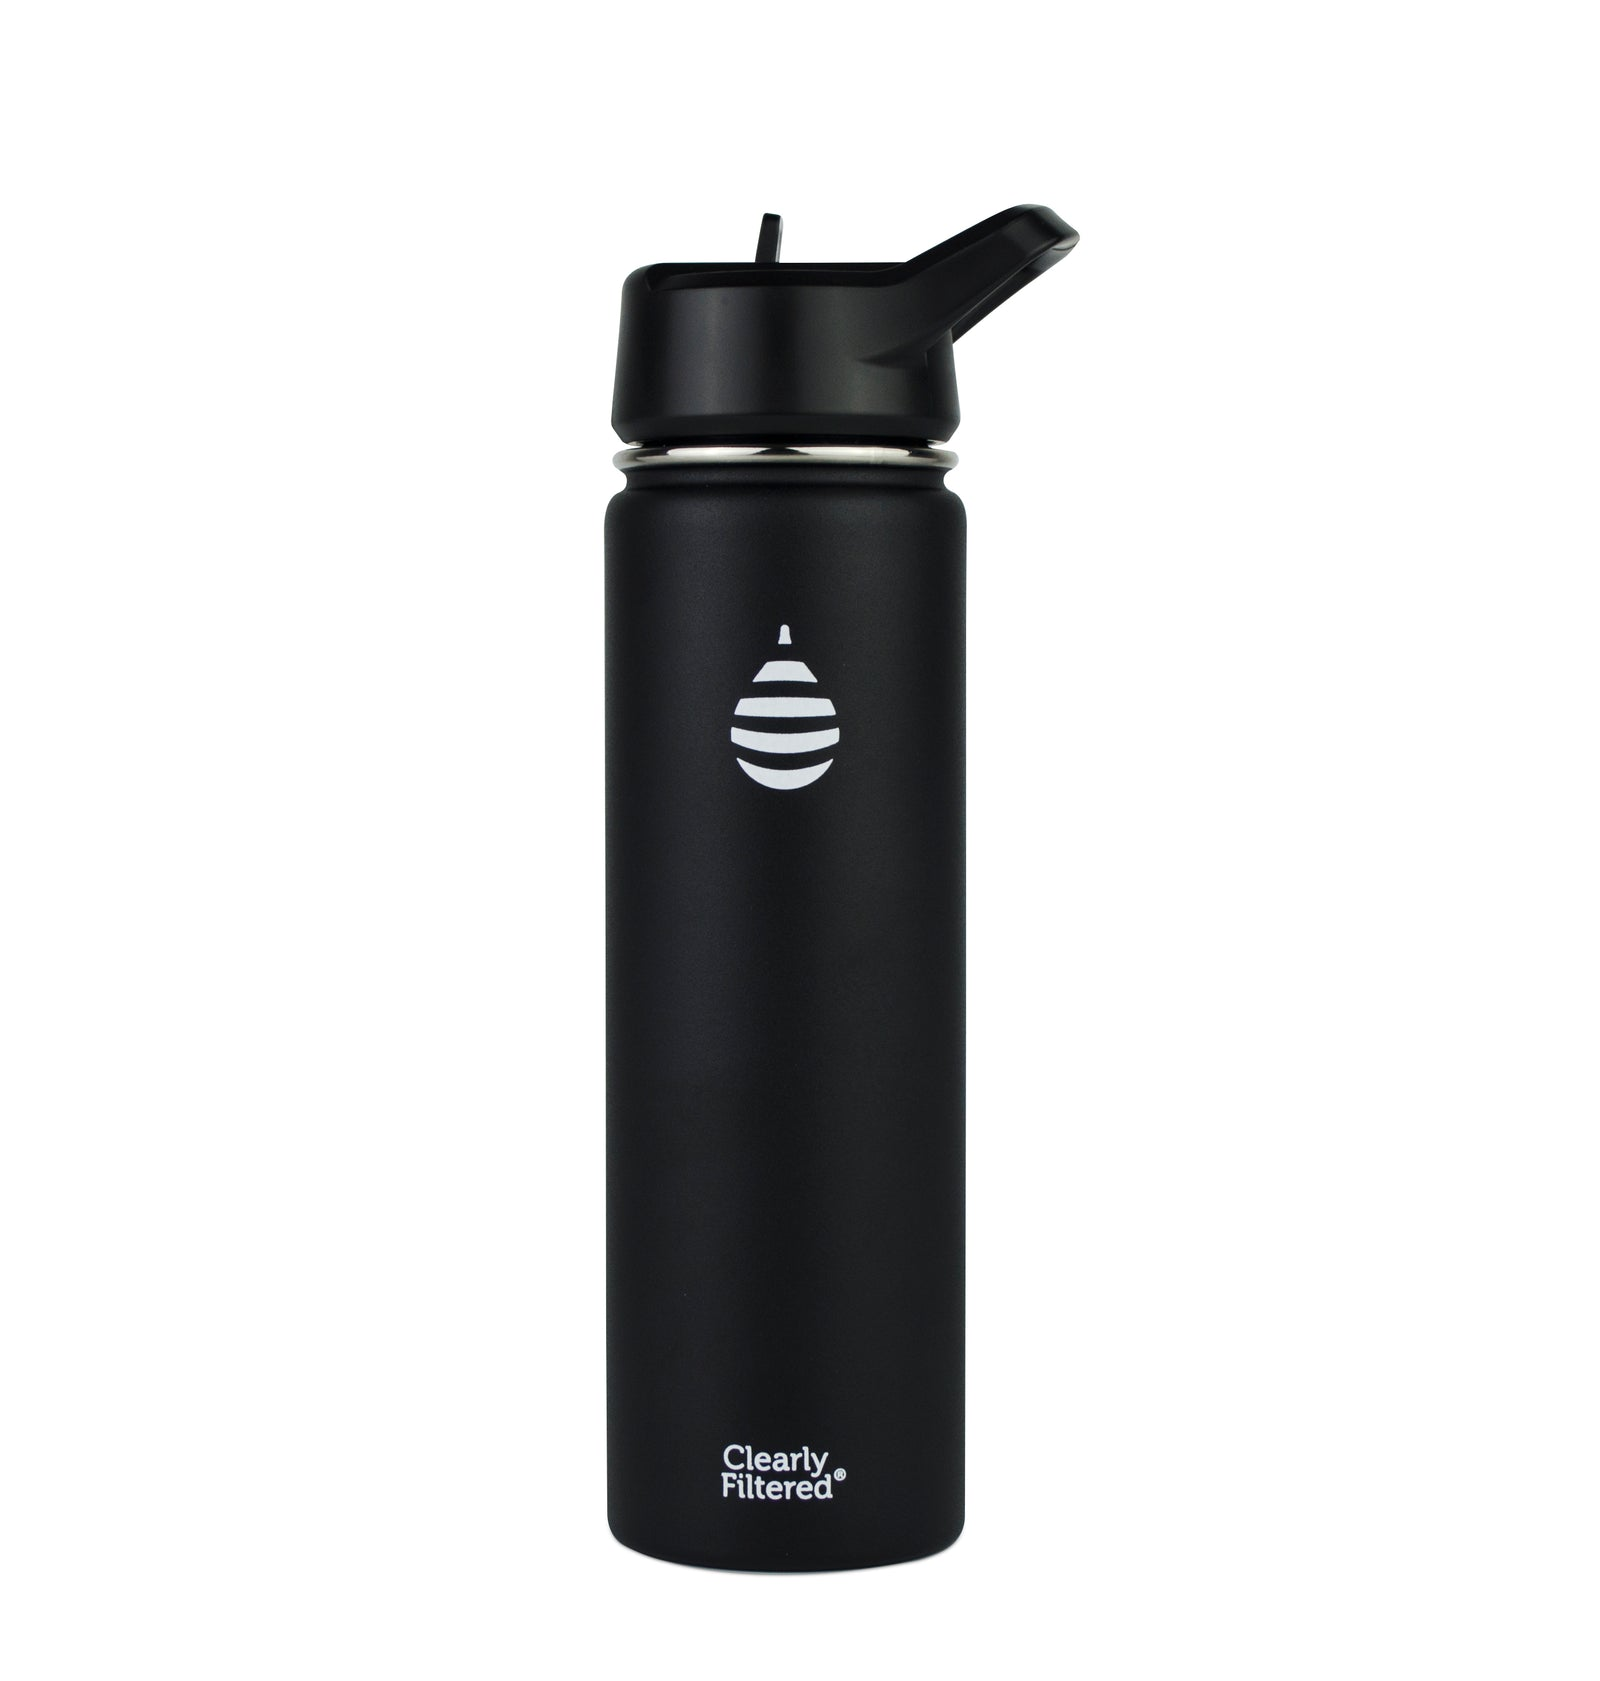 Insulated Stainless Steel Filtered Water Bottle with Affinity® Filtration Technology